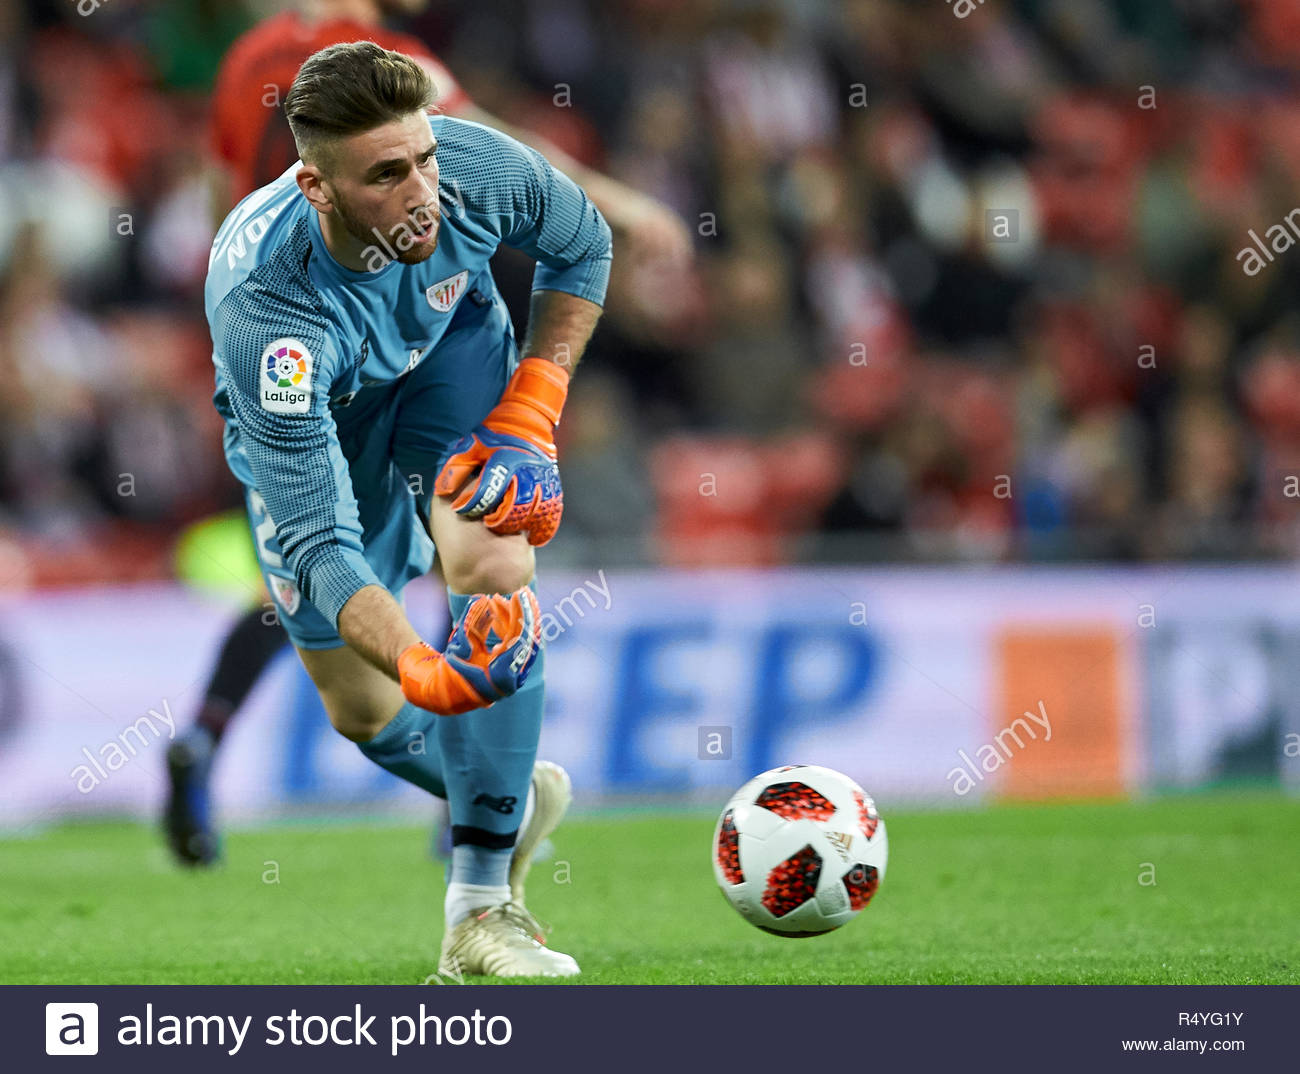 Bilbao, northern Spain, Wednesday, November, 28, 2018. (25) Unai Simon during the Spanish Copa del Rey soccer match between Athletic Club Bilbao and S.D Huesca at San Mames stadium. Credit: Ion Alcoba Beitia/Alamy Live News - Stock Image